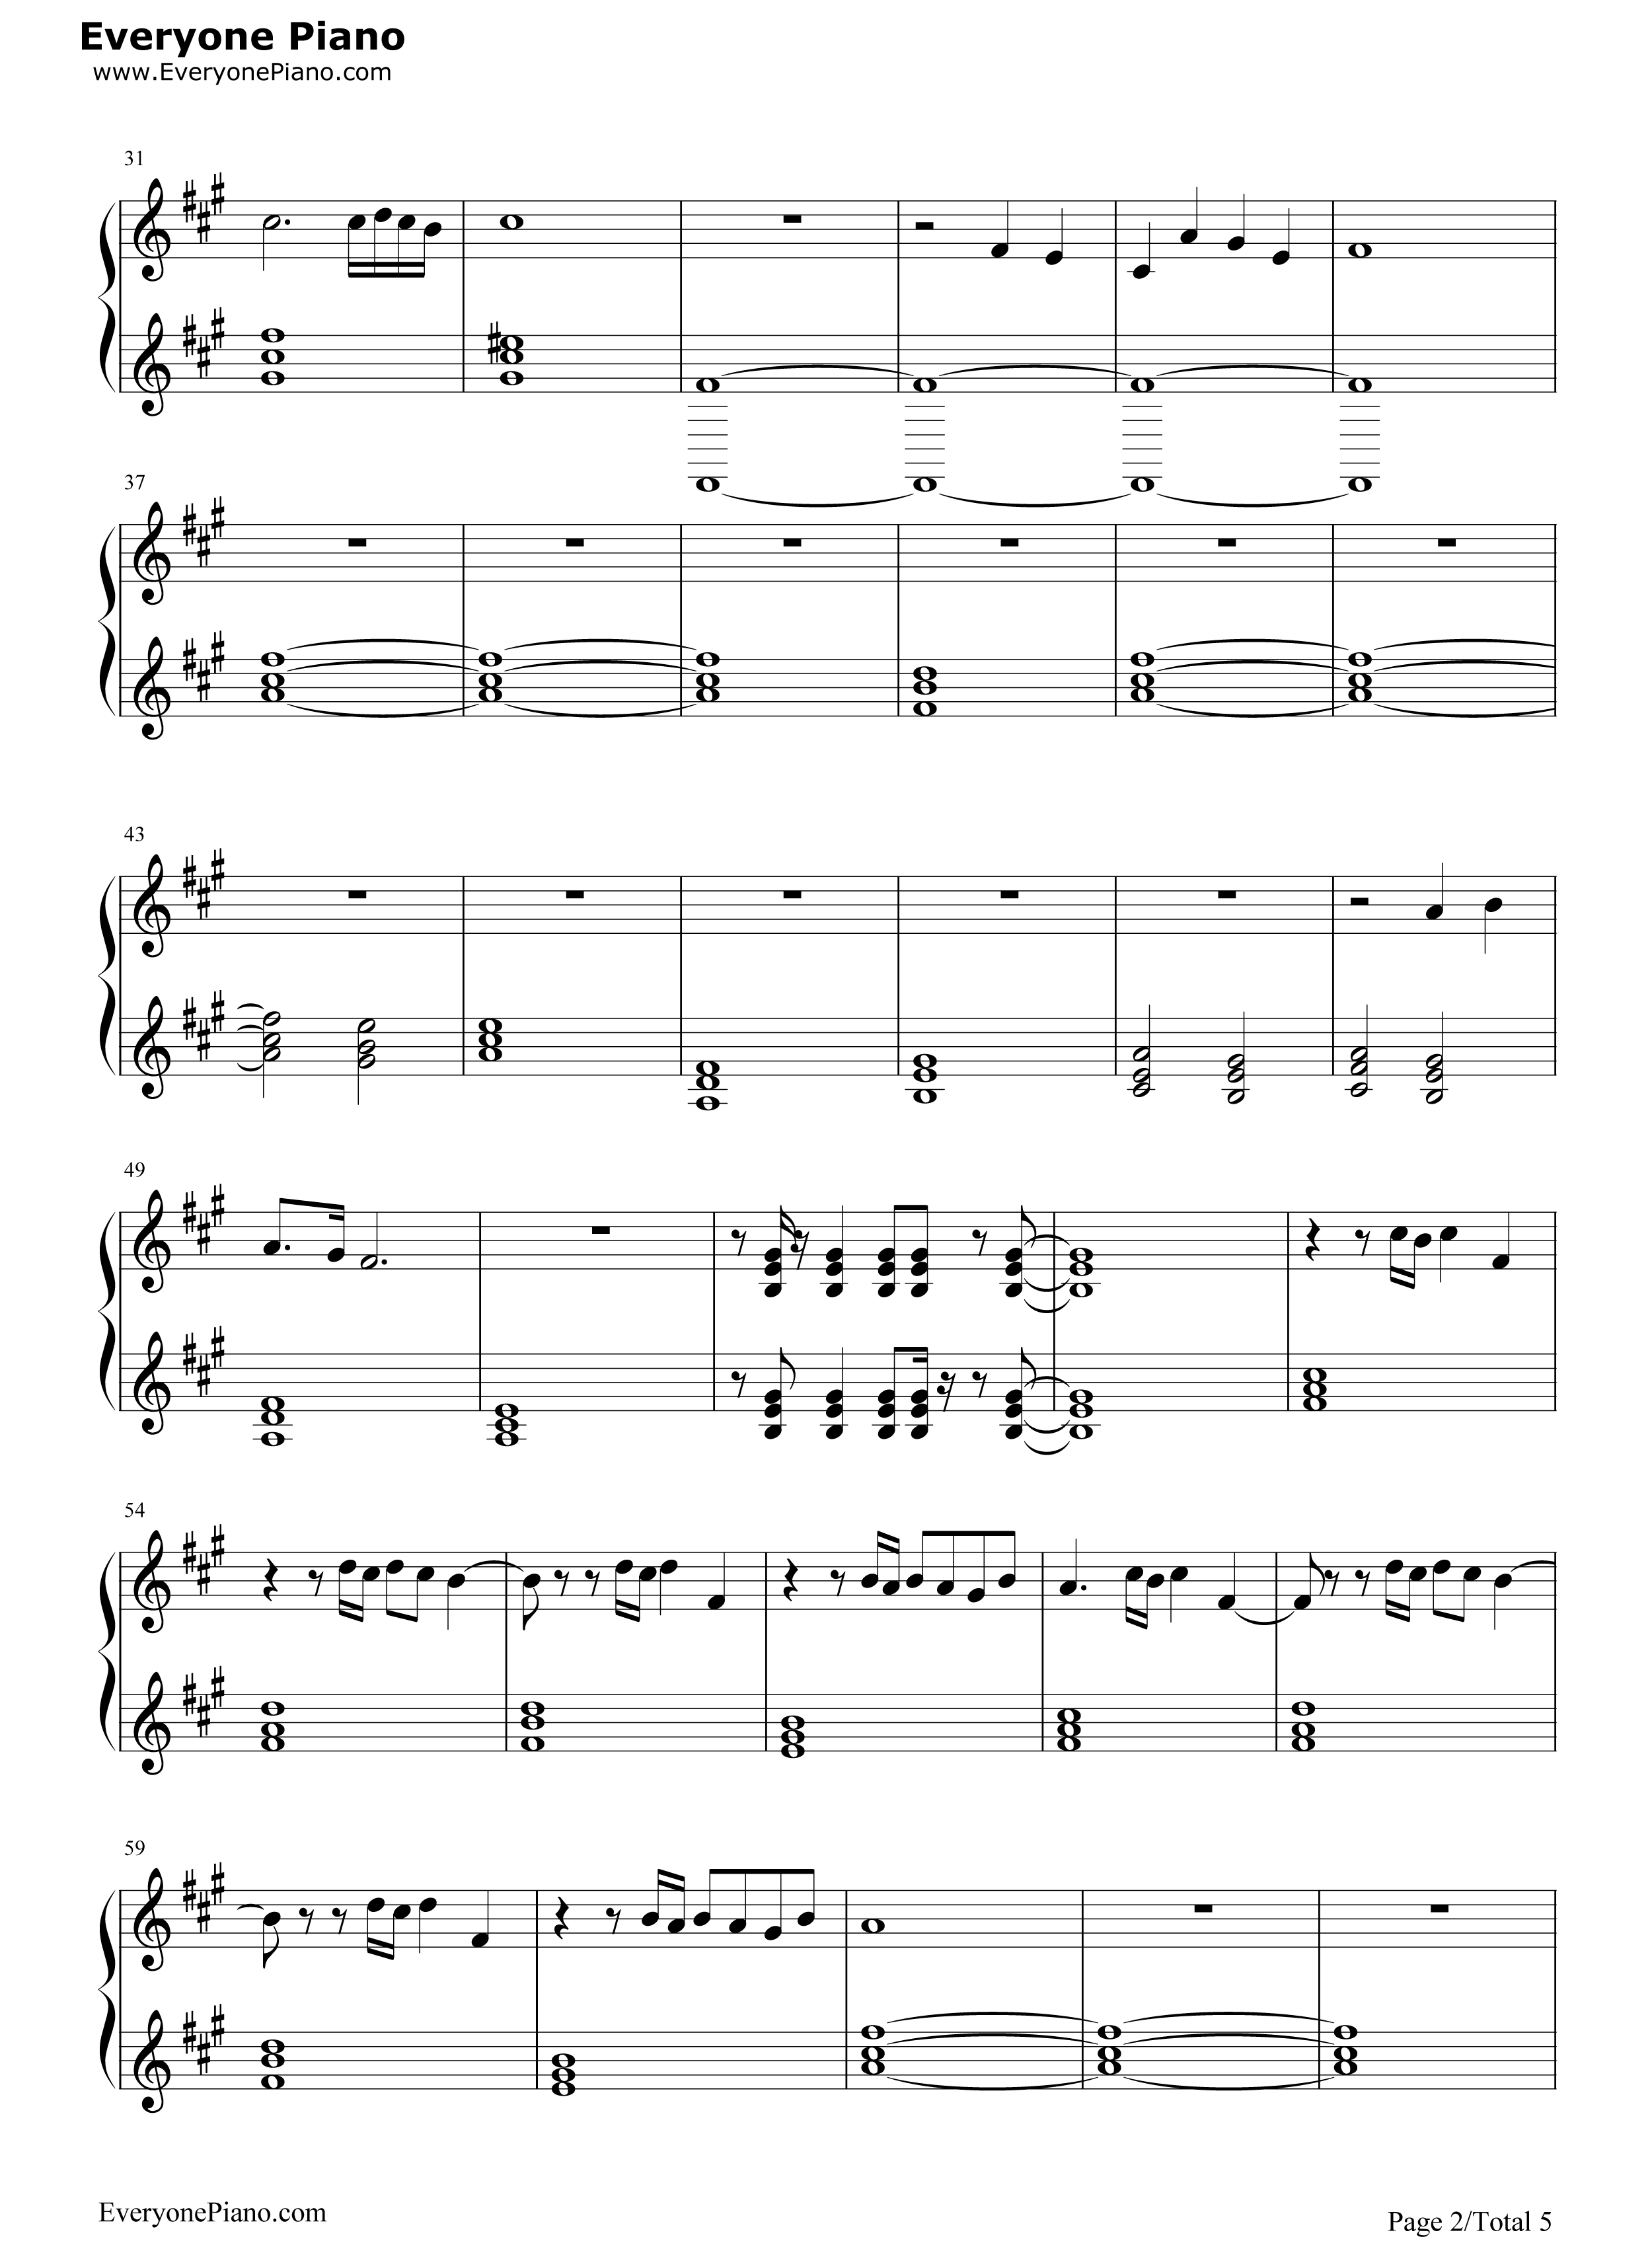 The final countdown europe stave preview 2 free piano sheet music listen now print sheet the final countdown europe stave preview 2 hexwebz Gallery